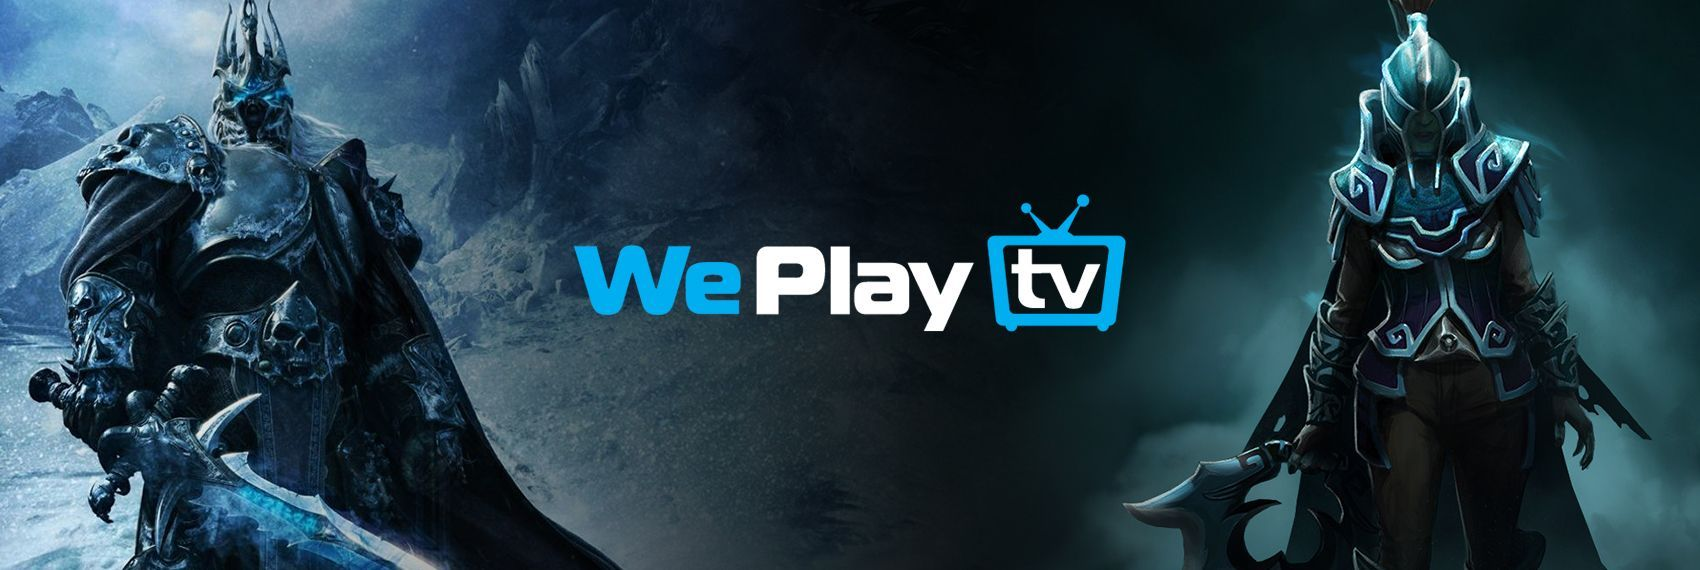 Tournament holding system «WePlay.tv»